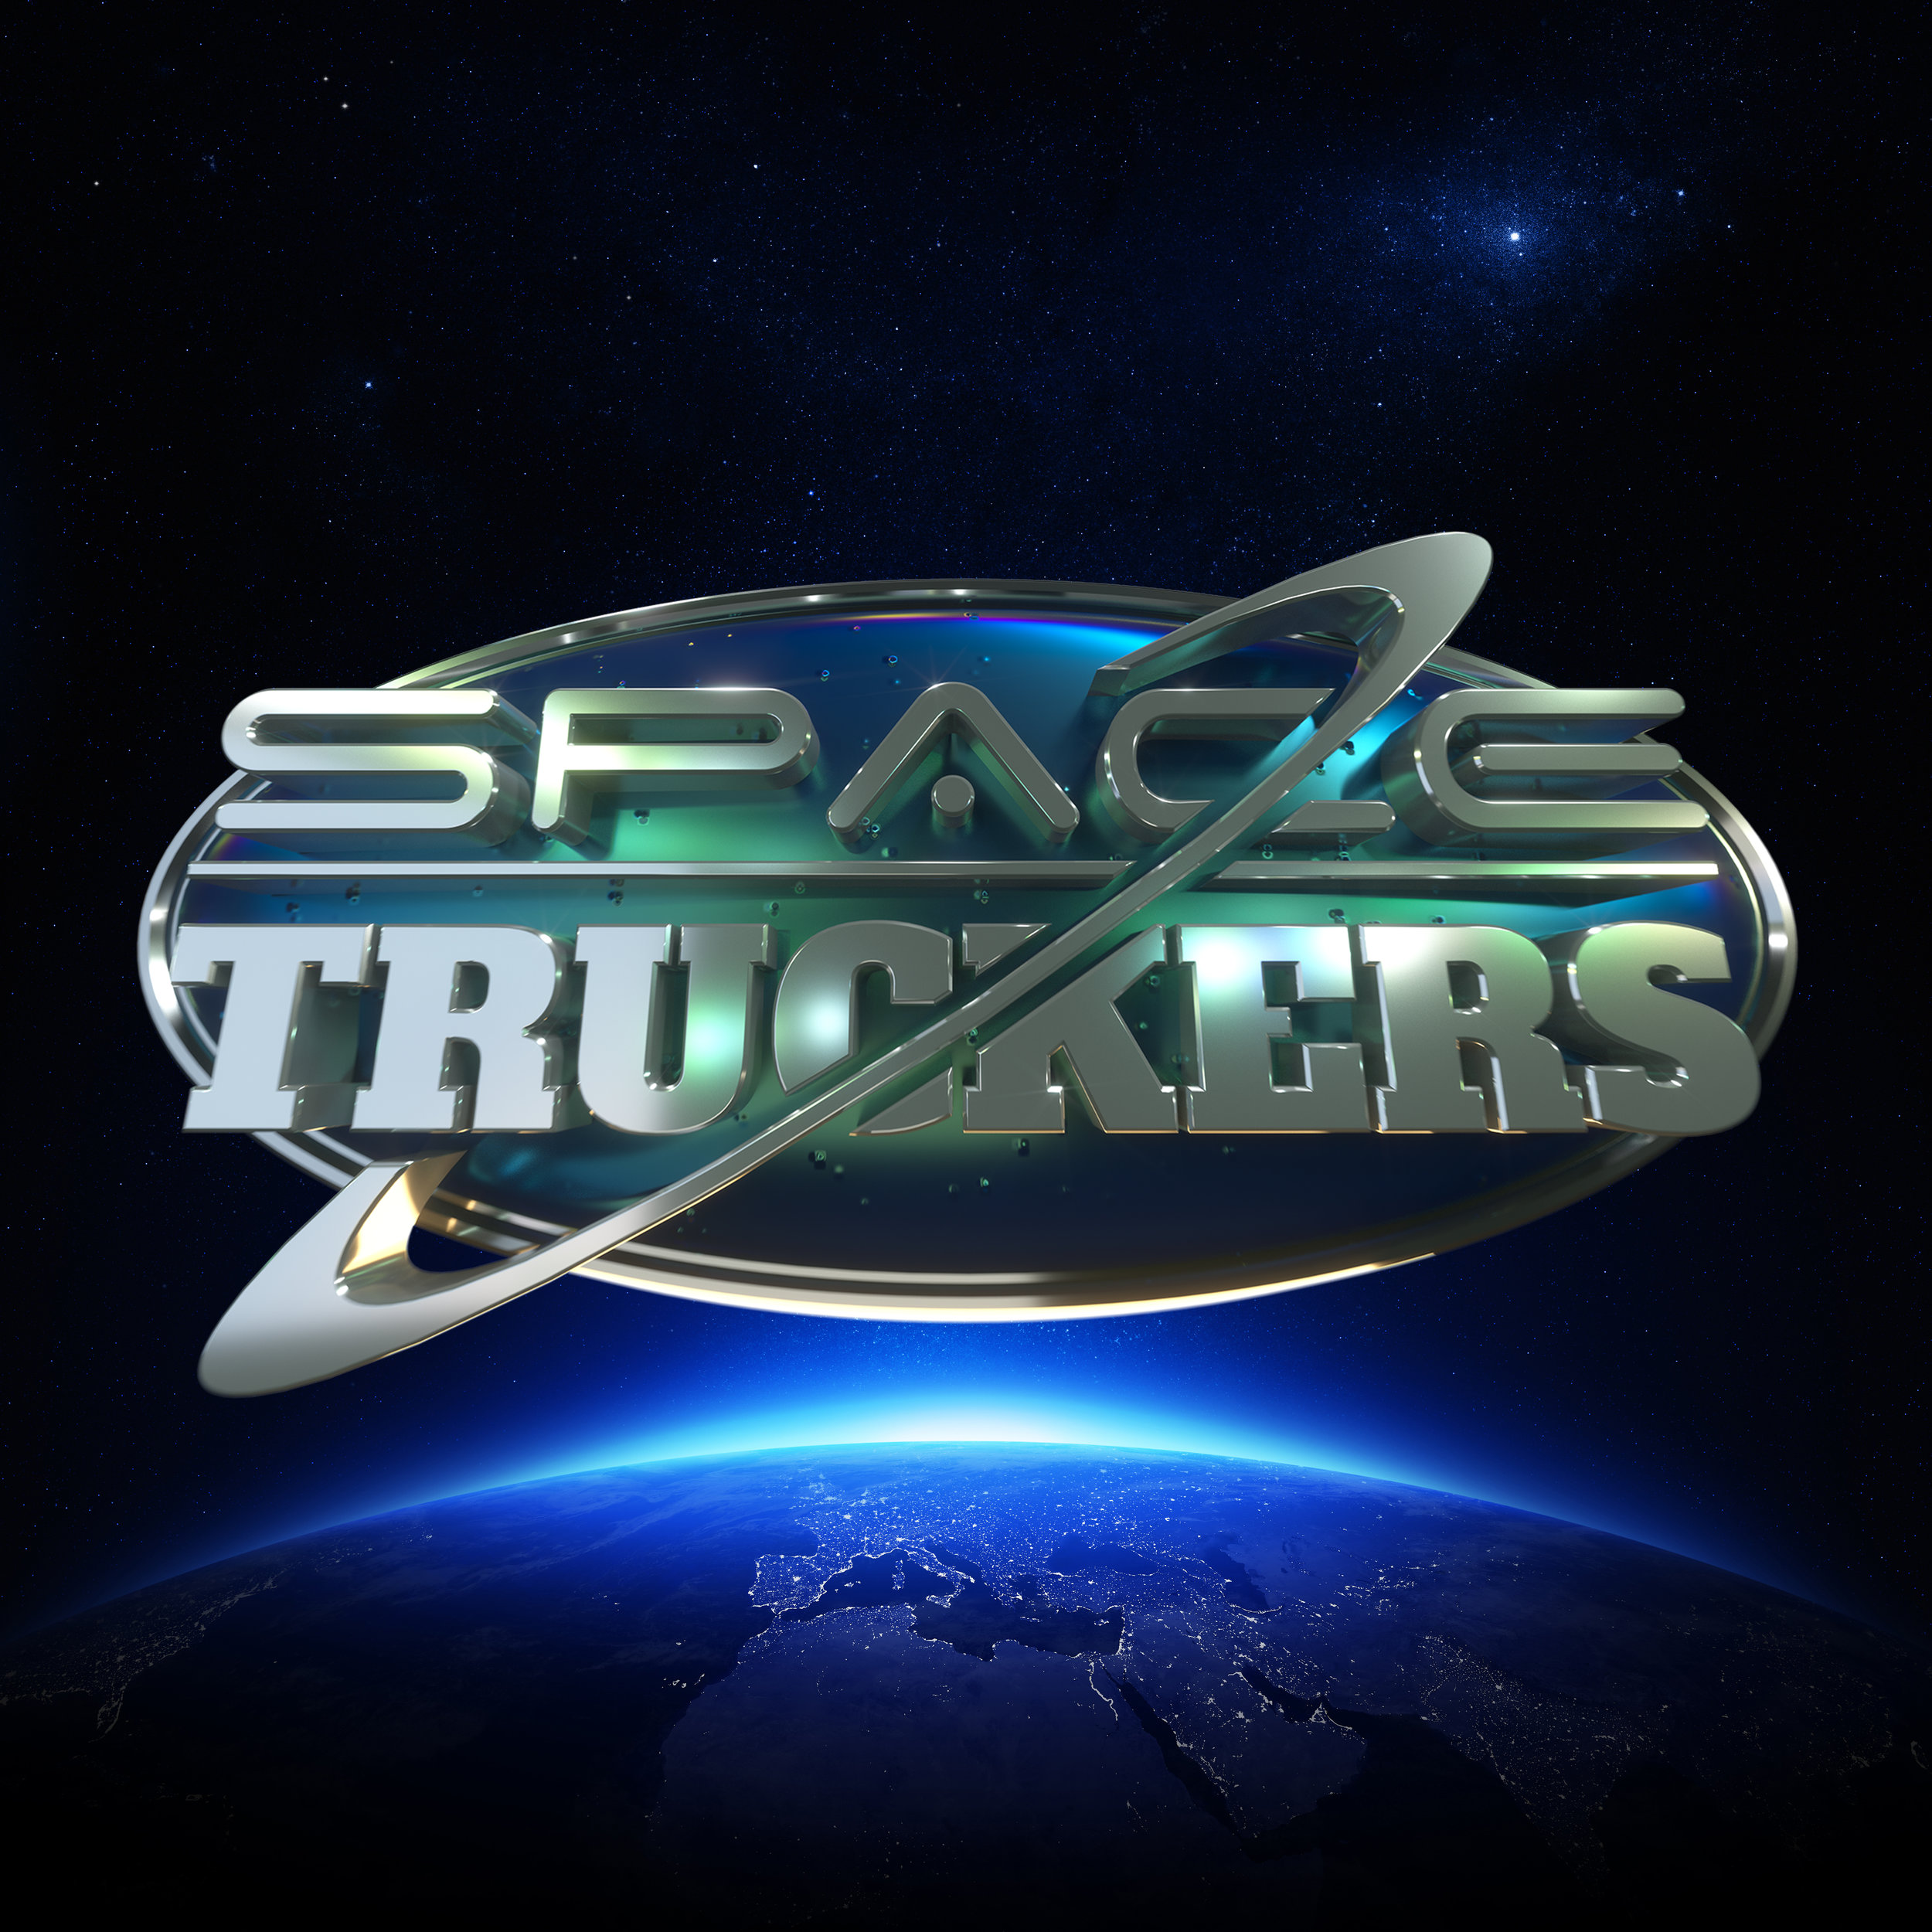 Space Truckers (2017) - Executive ProducerBBC One Northern Ireland